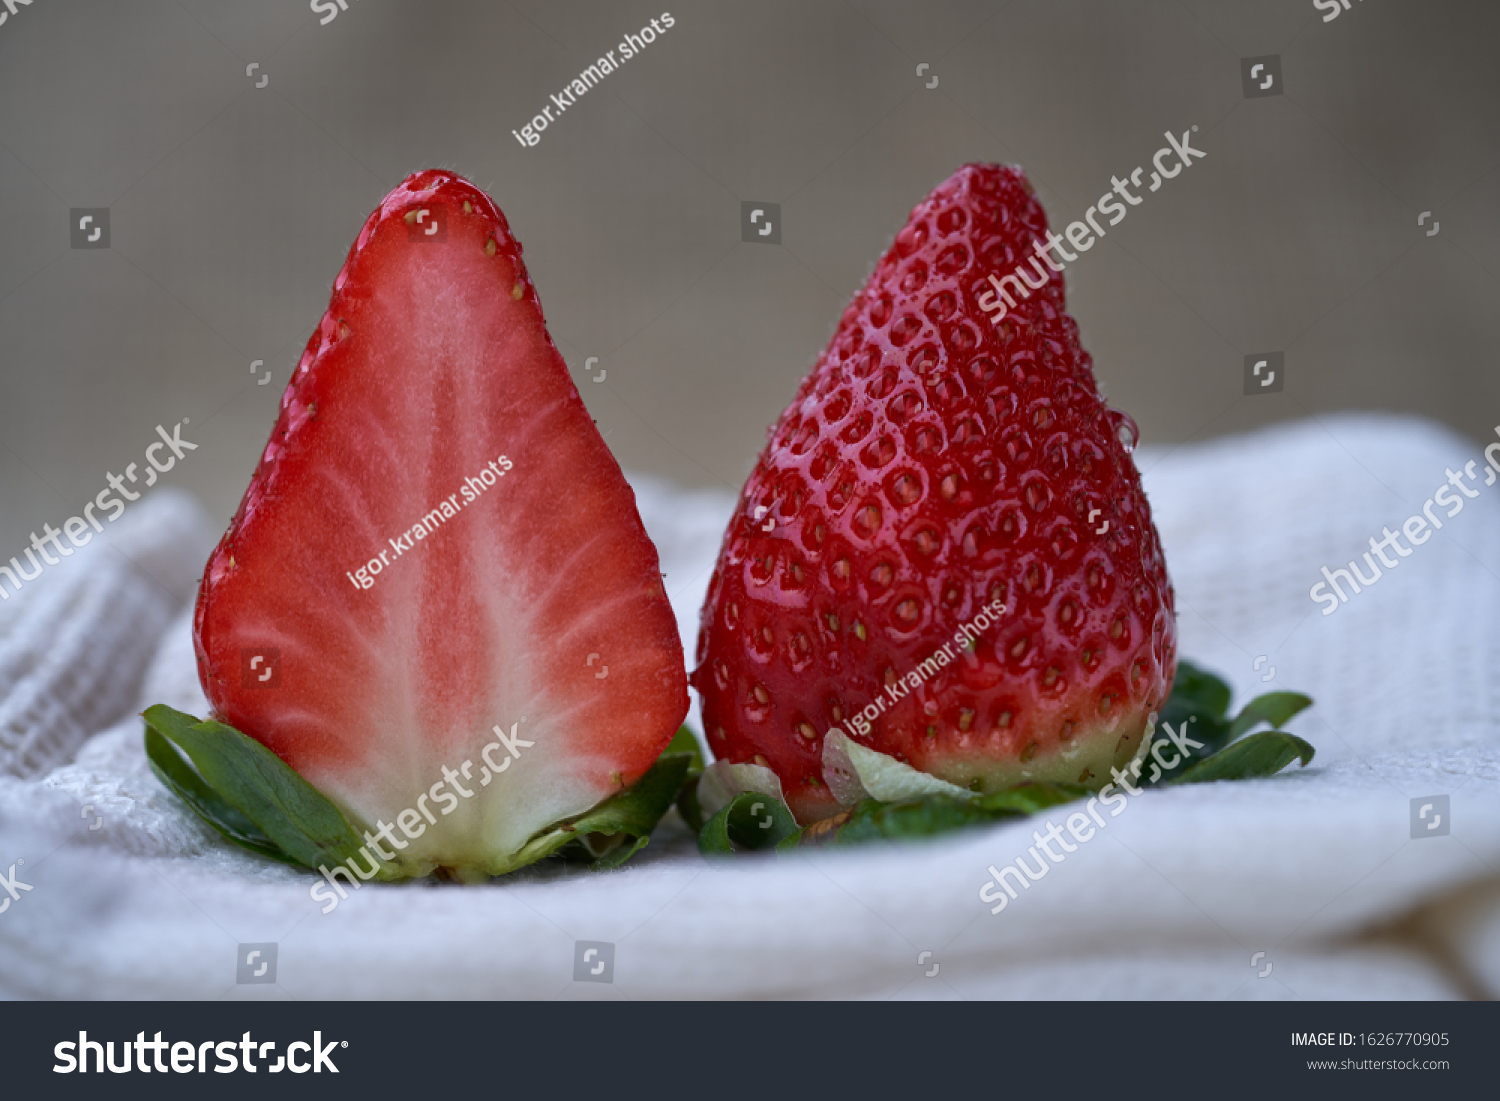 stock-photo-slice-of-ripe-red-strawberry